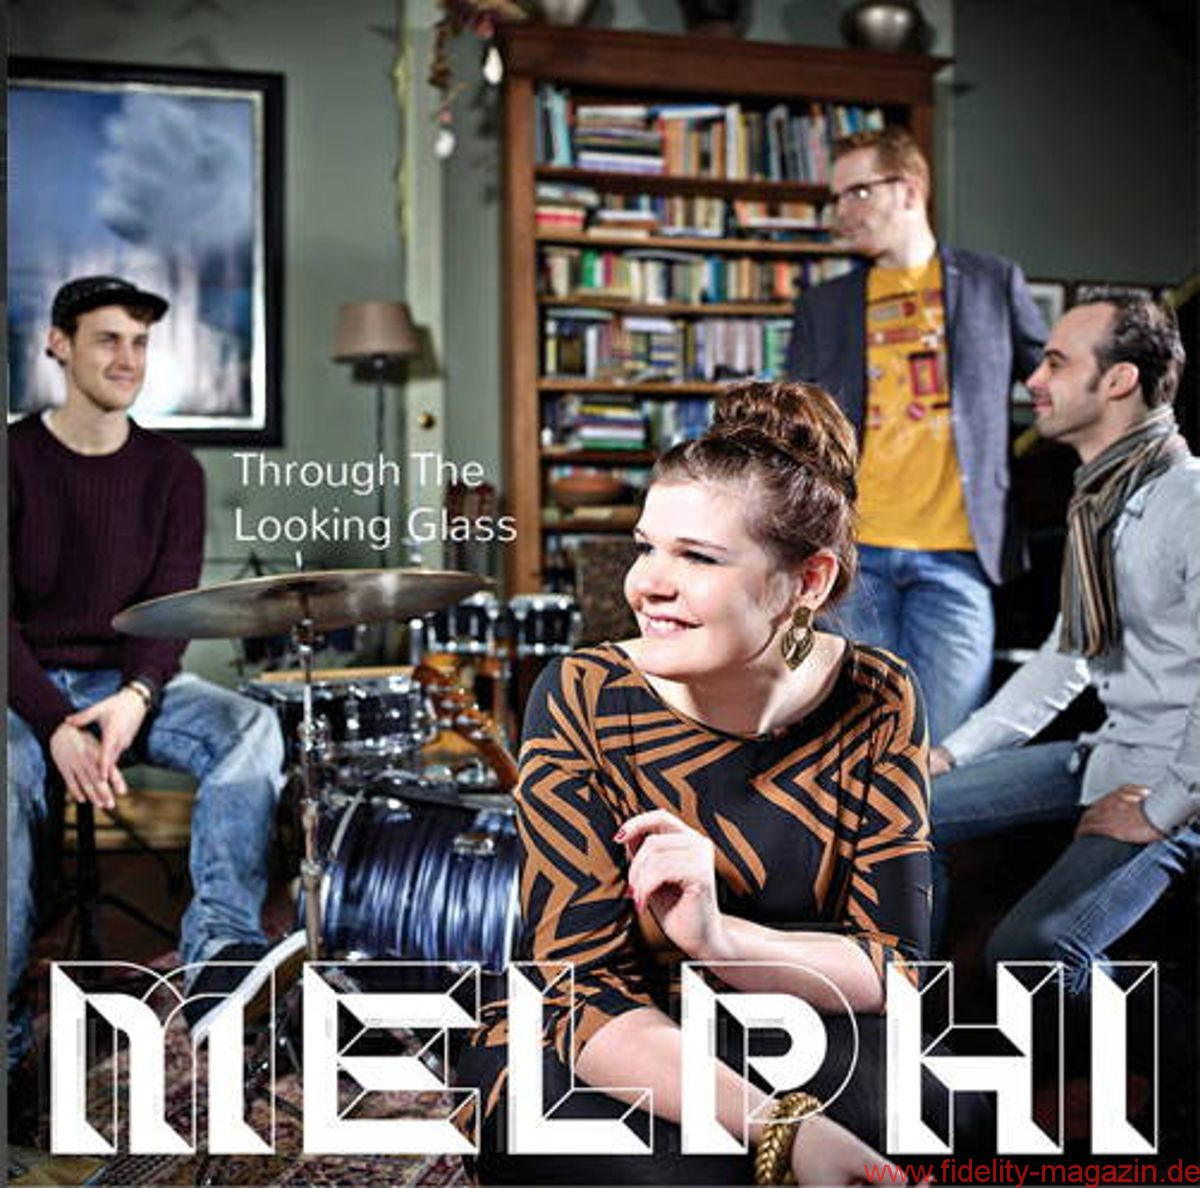 Melphi – Through The Looking Glass